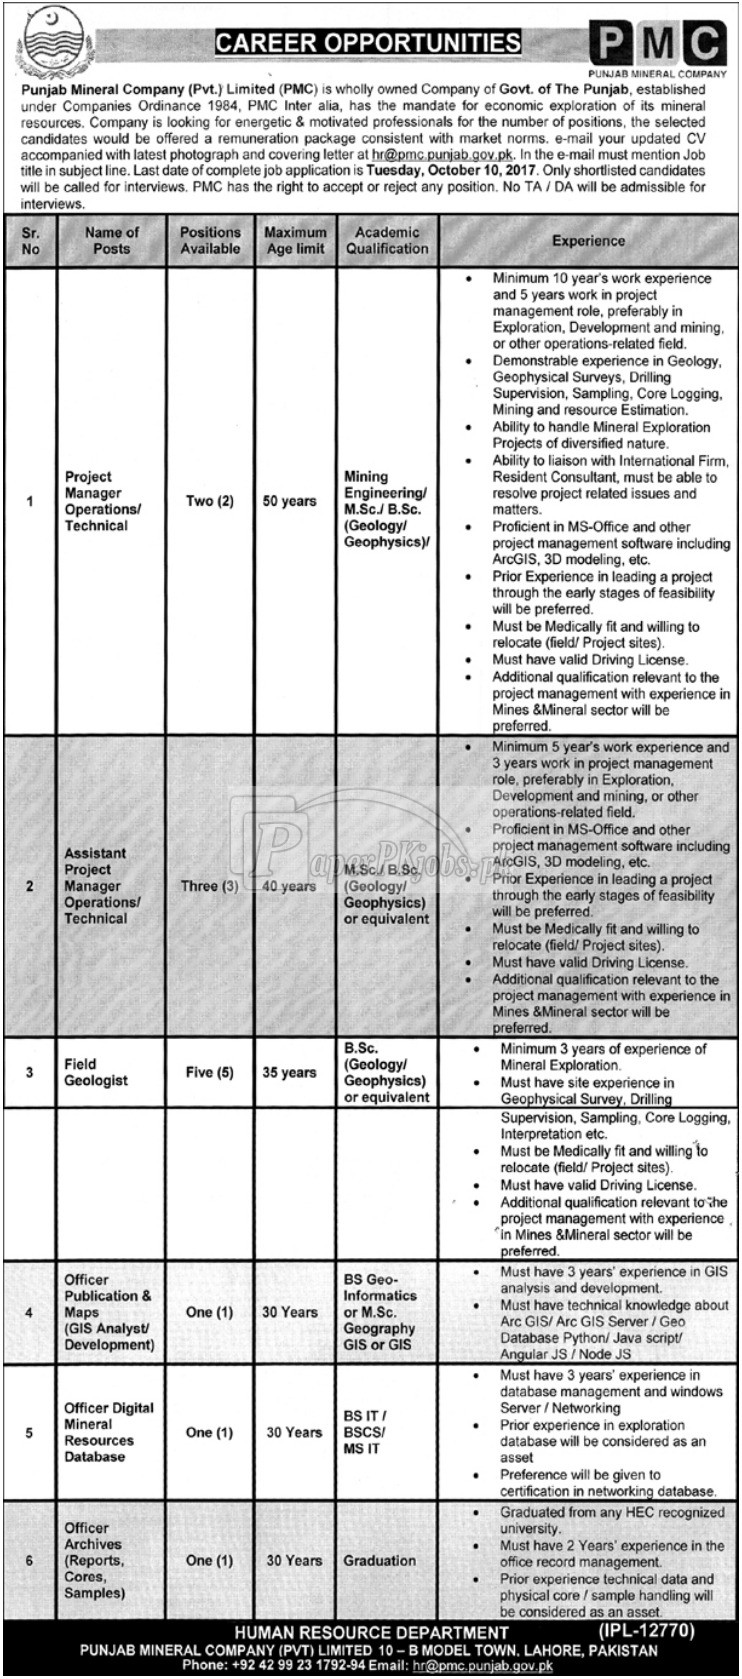 Punjab Mineral Company PMC Lahore Jobs 2017